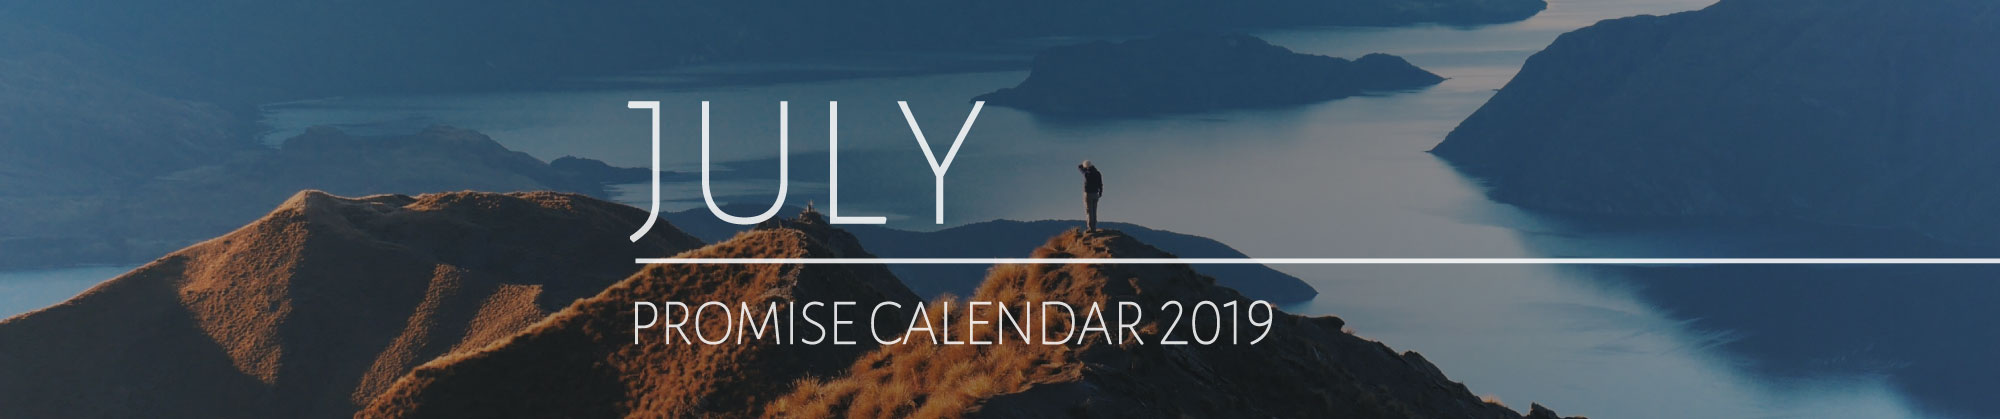 July 2019 Promise Calendar Header